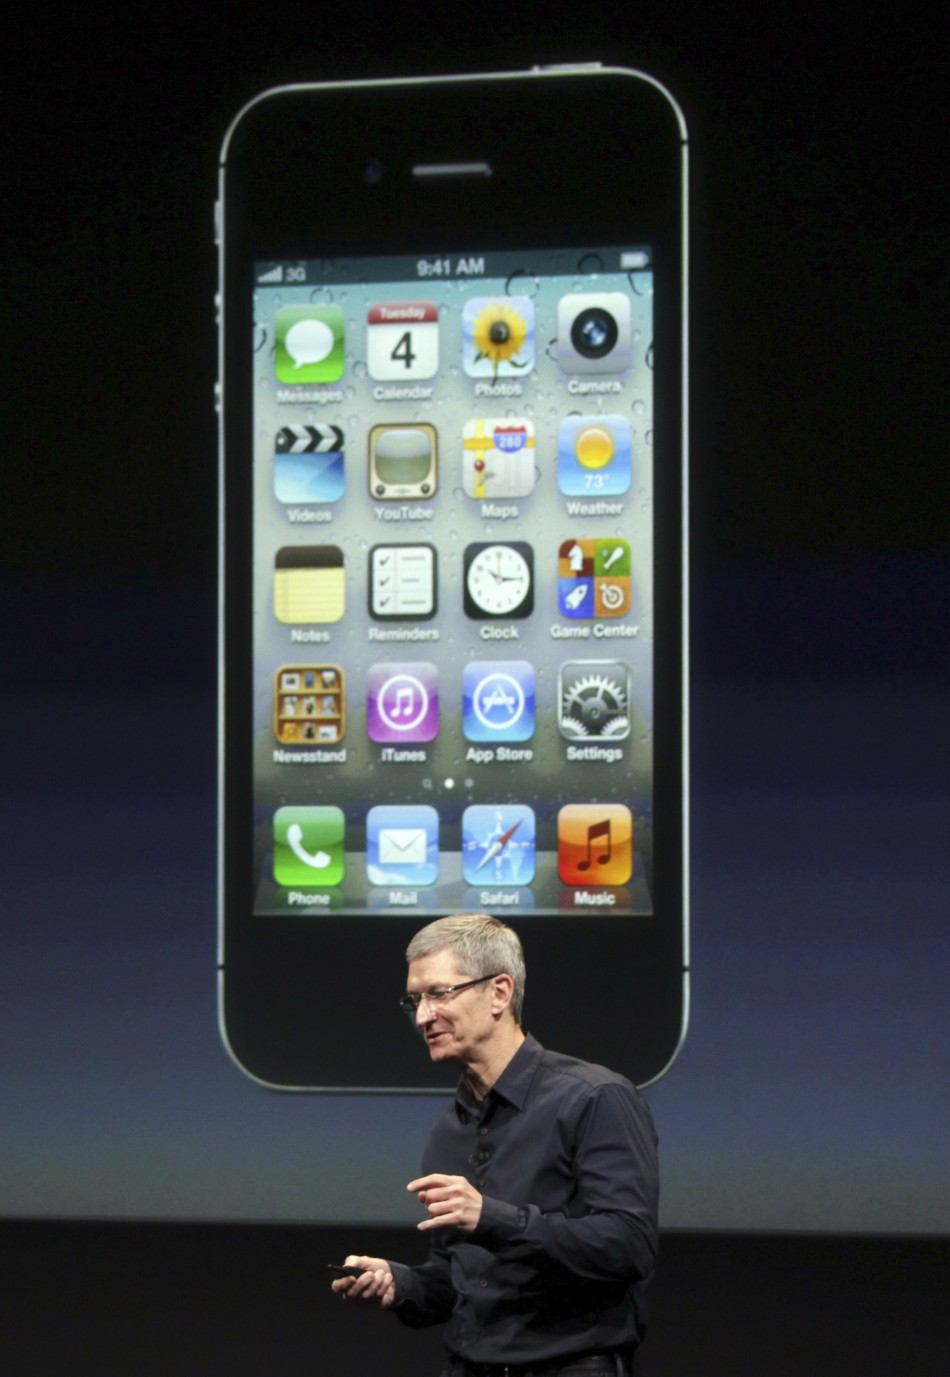 2. Apple iPhone 4S as it Happened  No iPhone 5, but a Reasonable UK Price